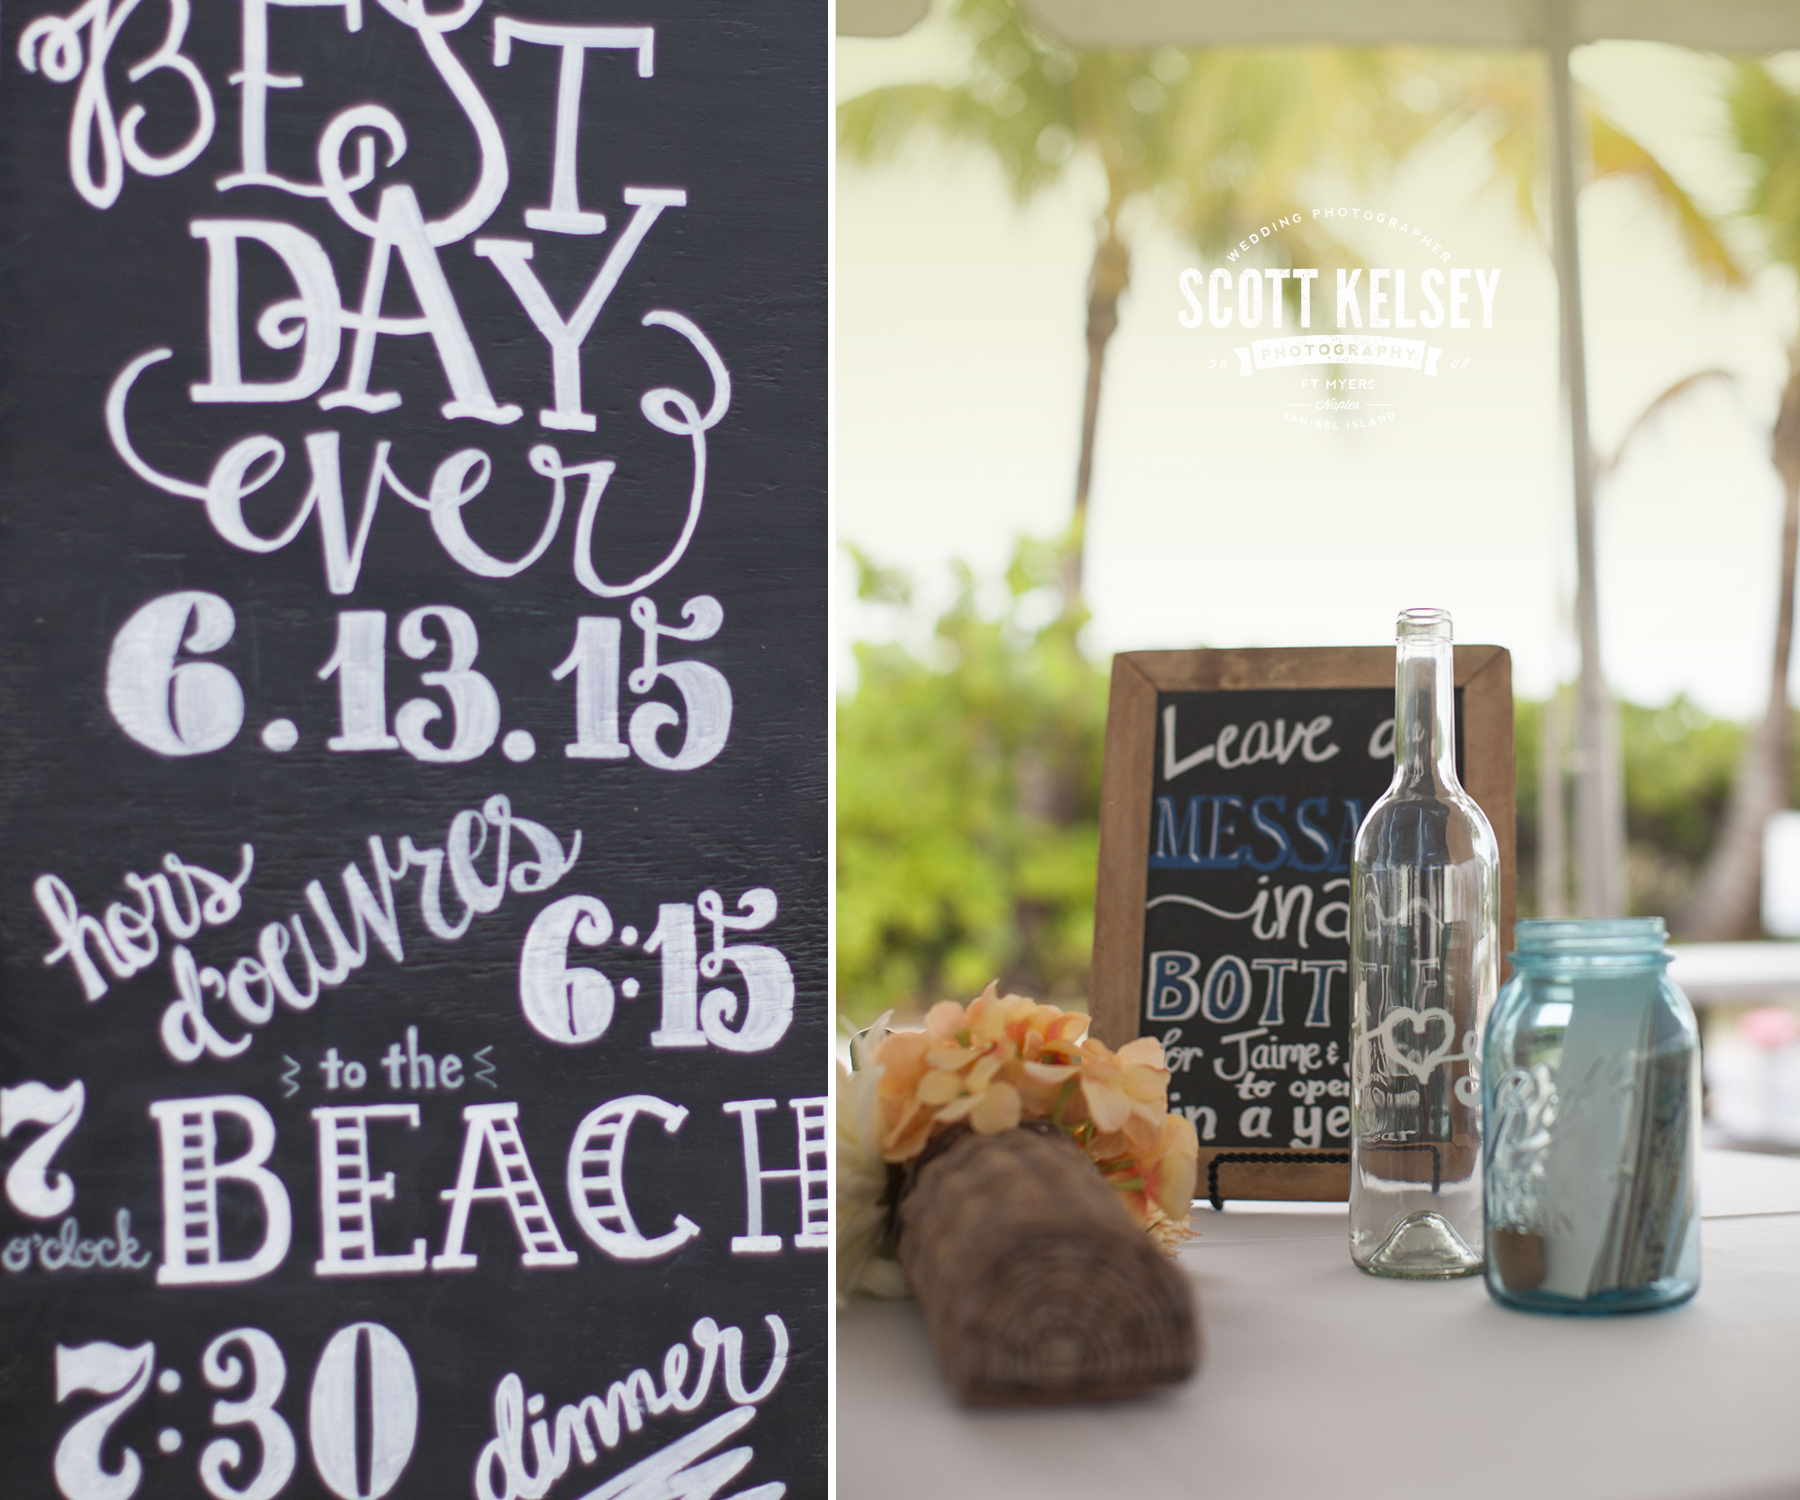 boho-wedding-watersideinn-sanibel-scott-kelsey-005